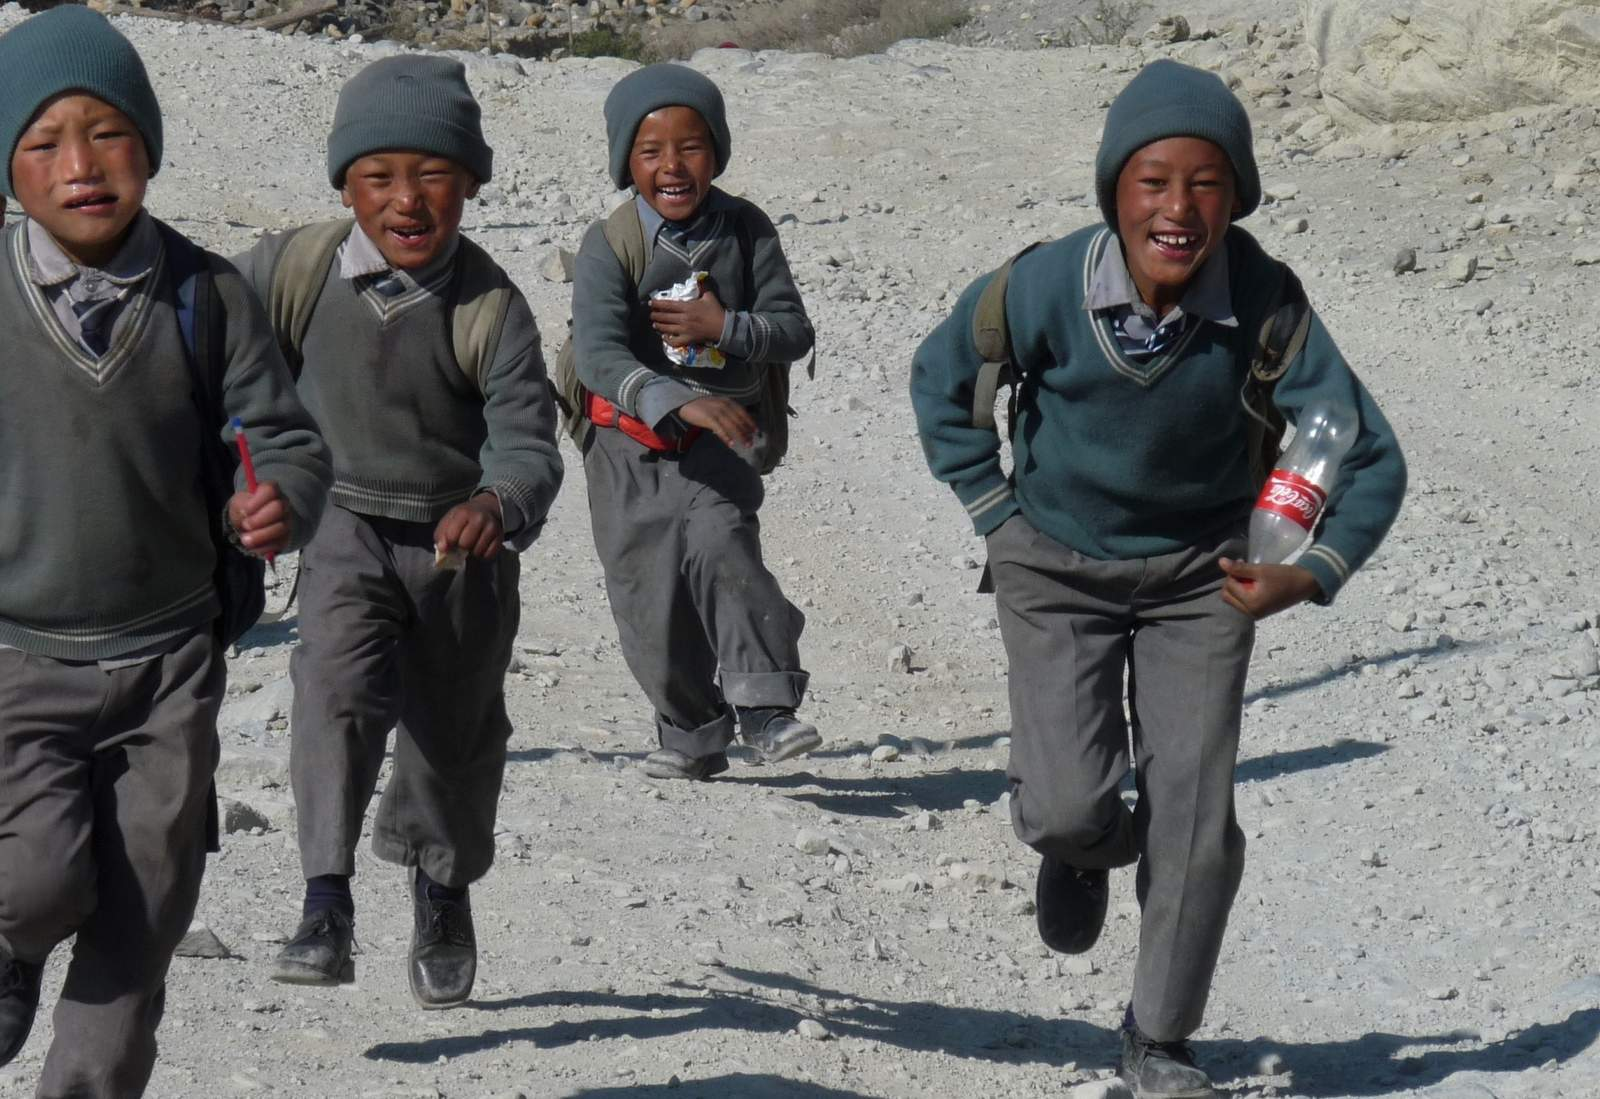 Children in the high Himalaya